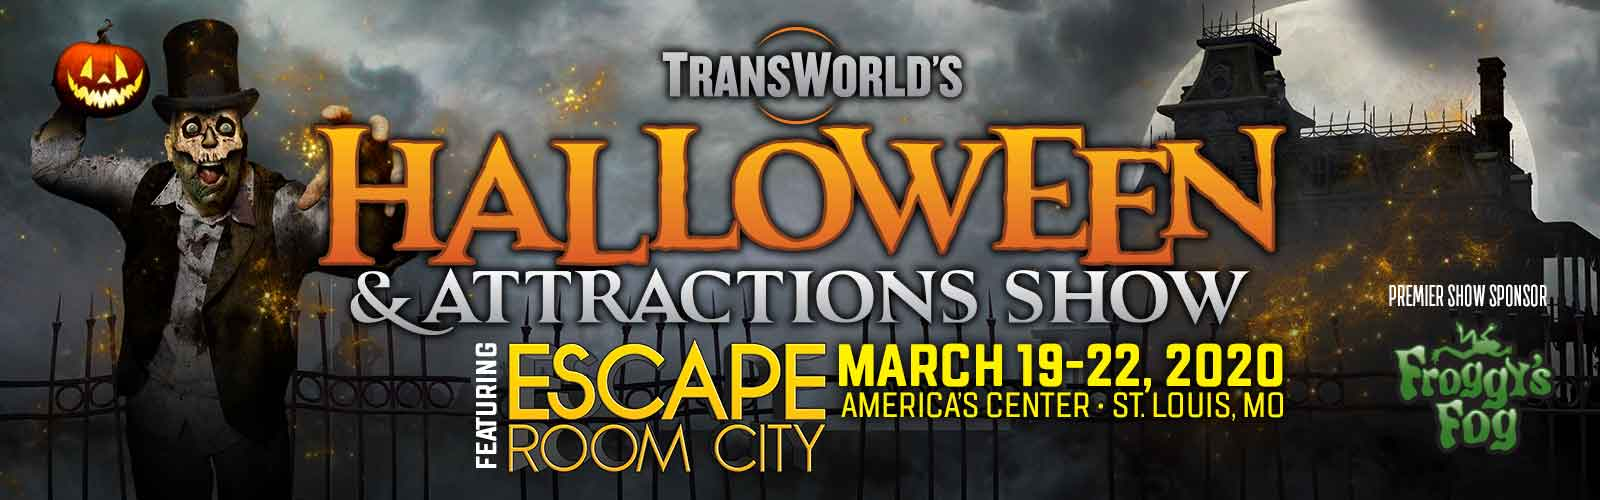 Best Haunted Houses In Illinois 2020 TransWorld's Halloween & Attractions Show   The biggest Halloween